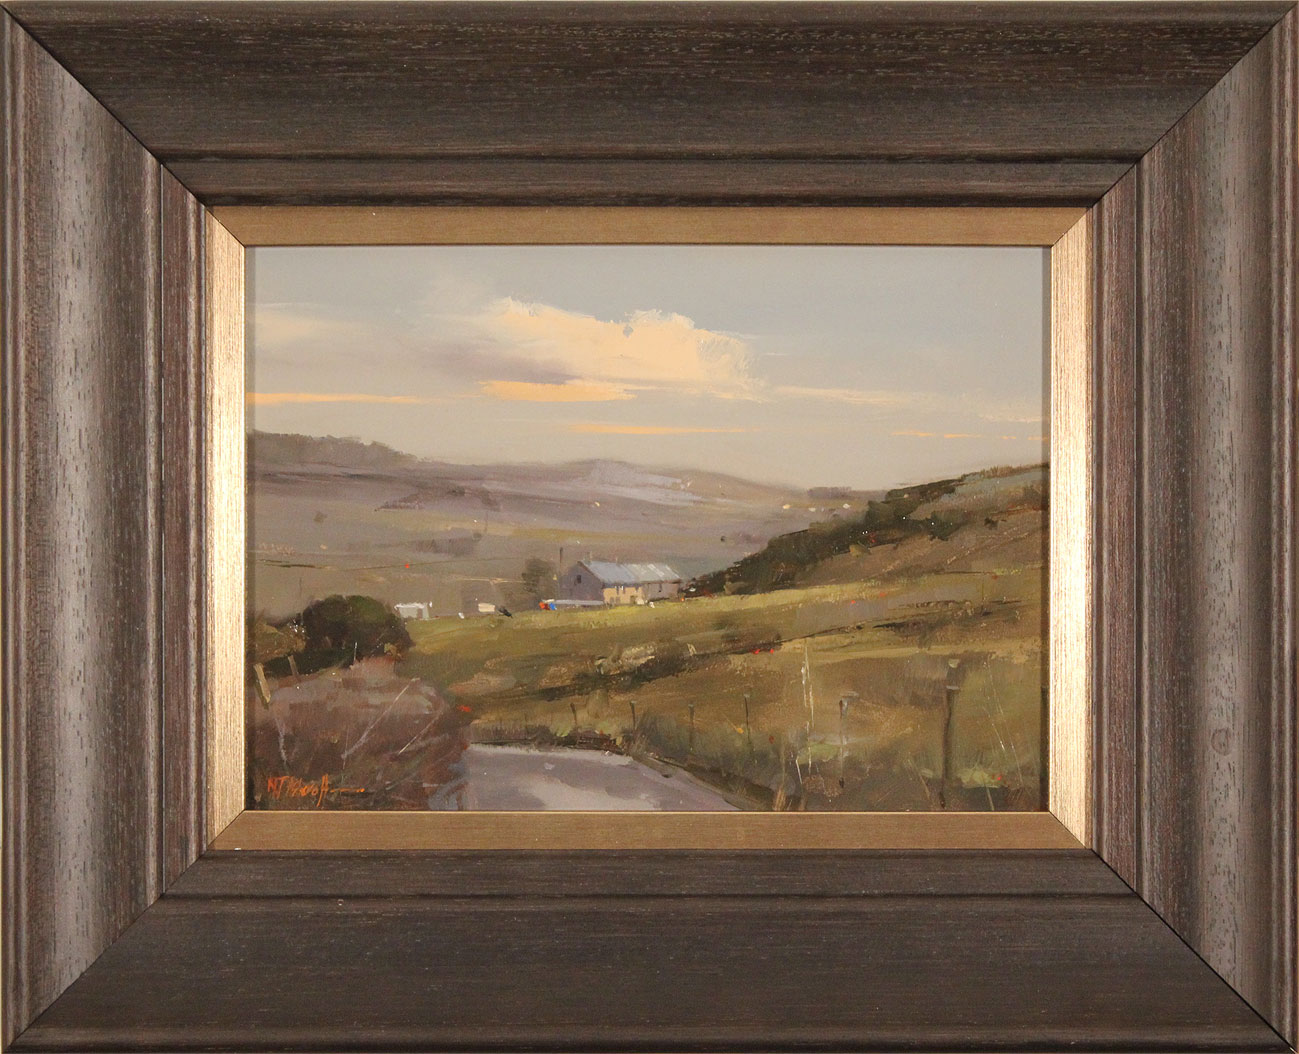 Michael John Ashcroft, AROI, Original oil painting on panel, Road to Harrogate. Click to enlarge